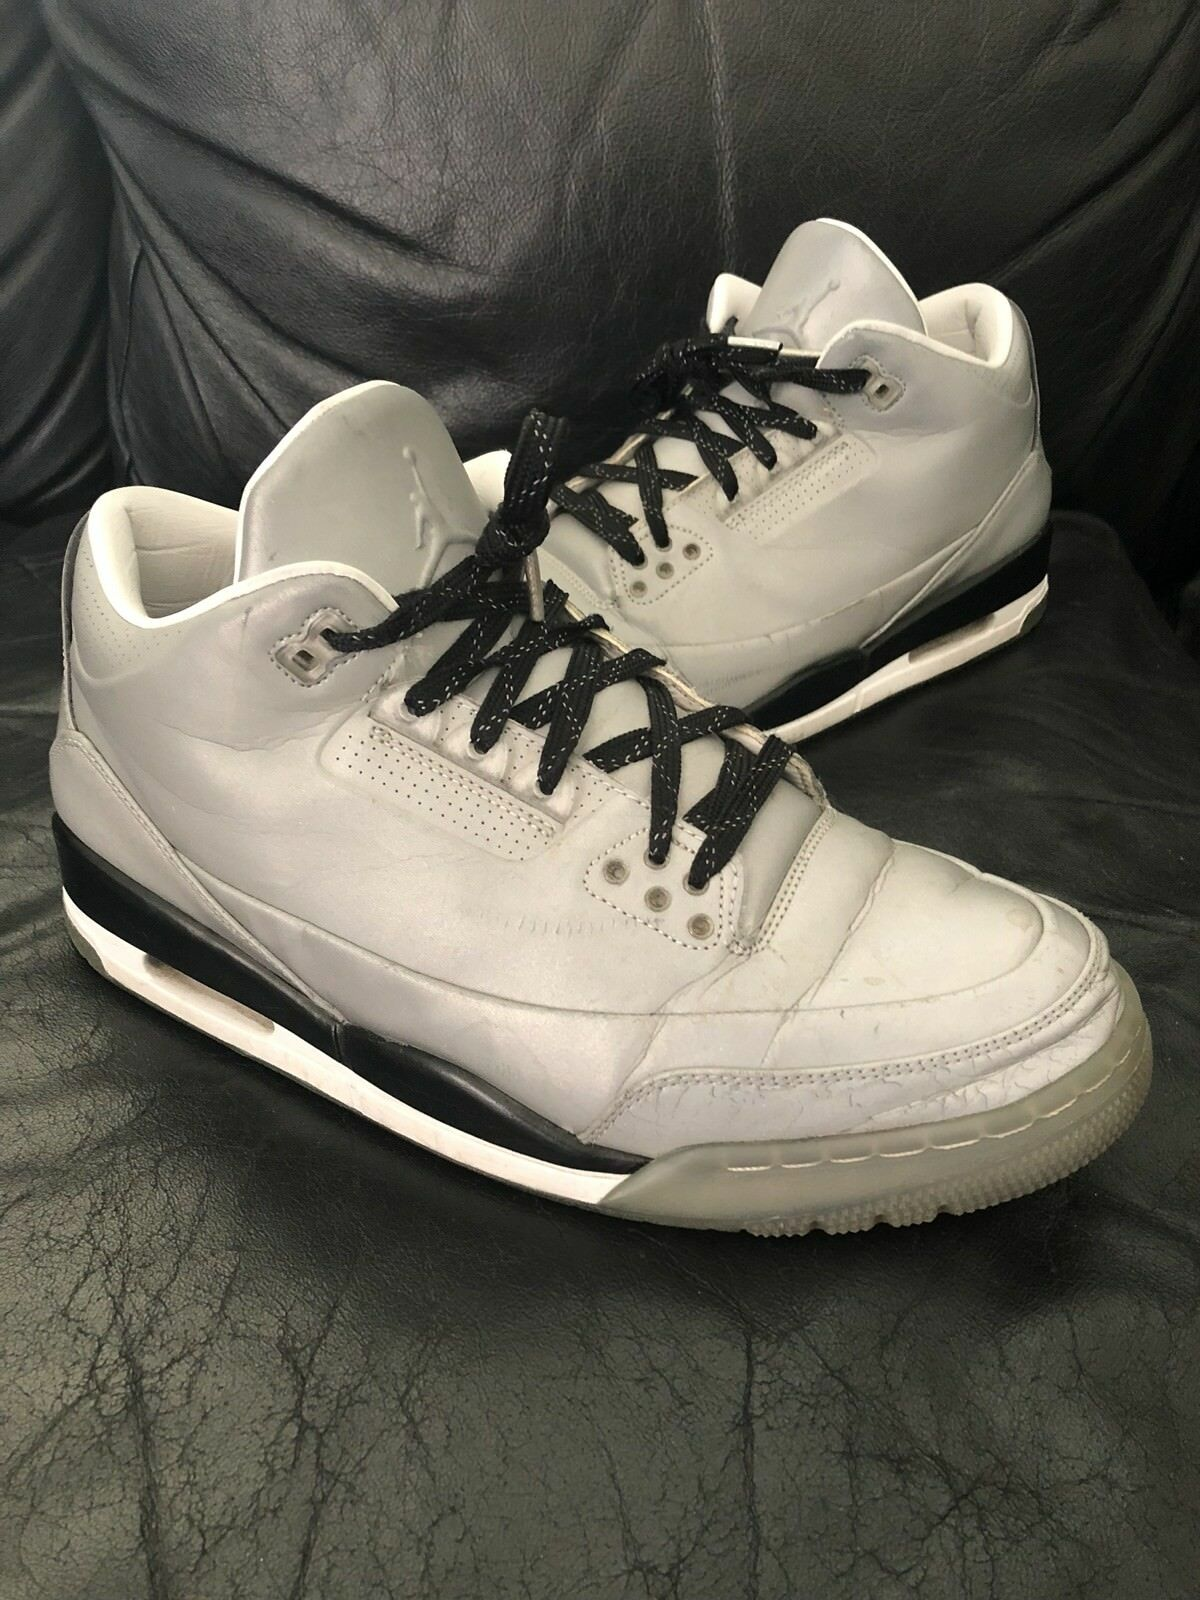 Great discount Nike Air Jordan 3 5LAB3 REFLECTIVE SILVER Sz 11.5 3M bred cement NRG off white